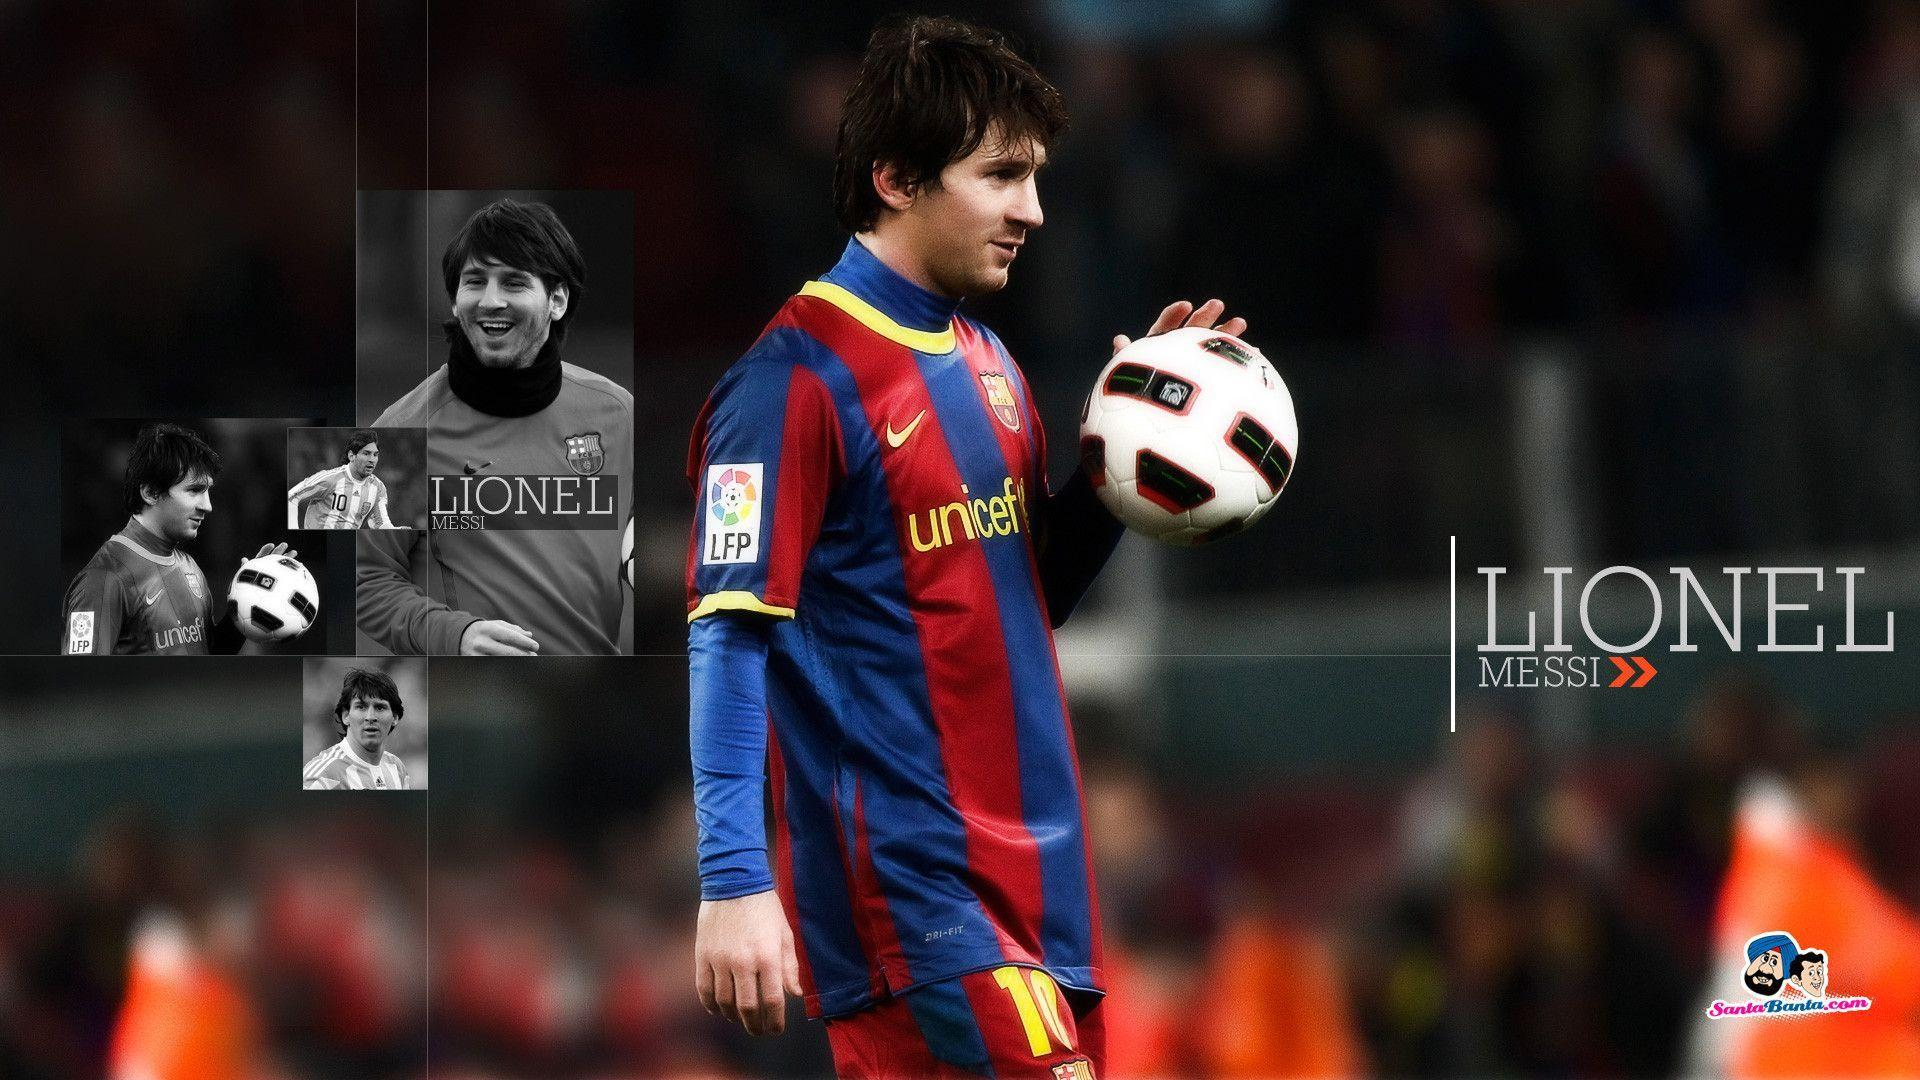 Best Lionel Messi Wallpaper 2014 | Hi Res and HD Wallpaper